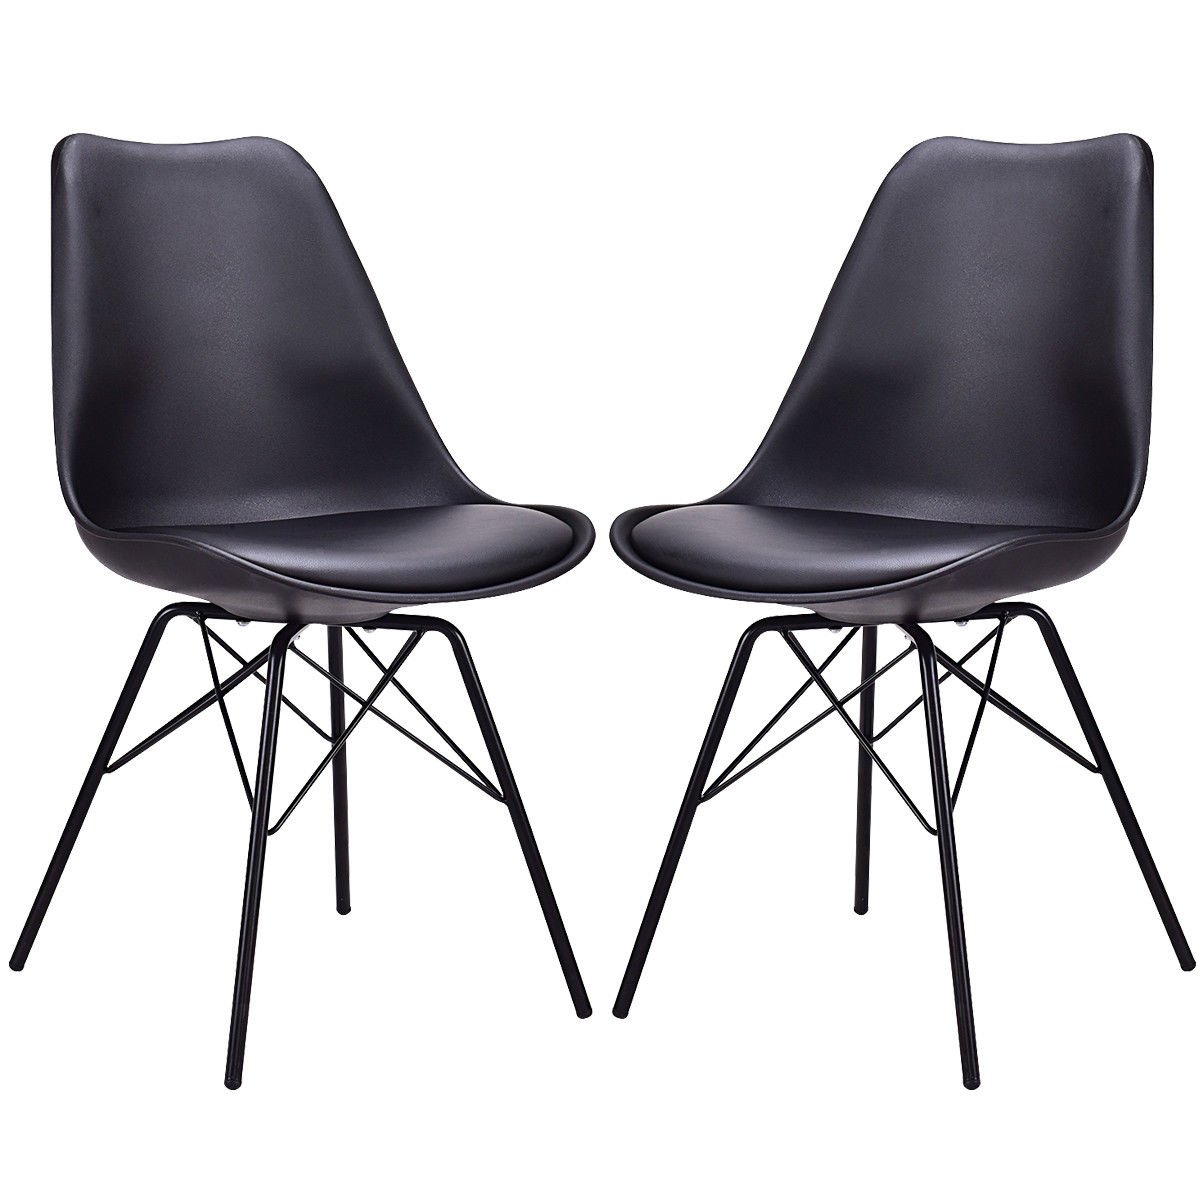 Giantex Set of 2 Dining Chair Upholstered PU Leather Armless Mid Century Modern Style with Padded Seat Metal Legs Accent Armless Chairs Living Room Chairs Set (Black)